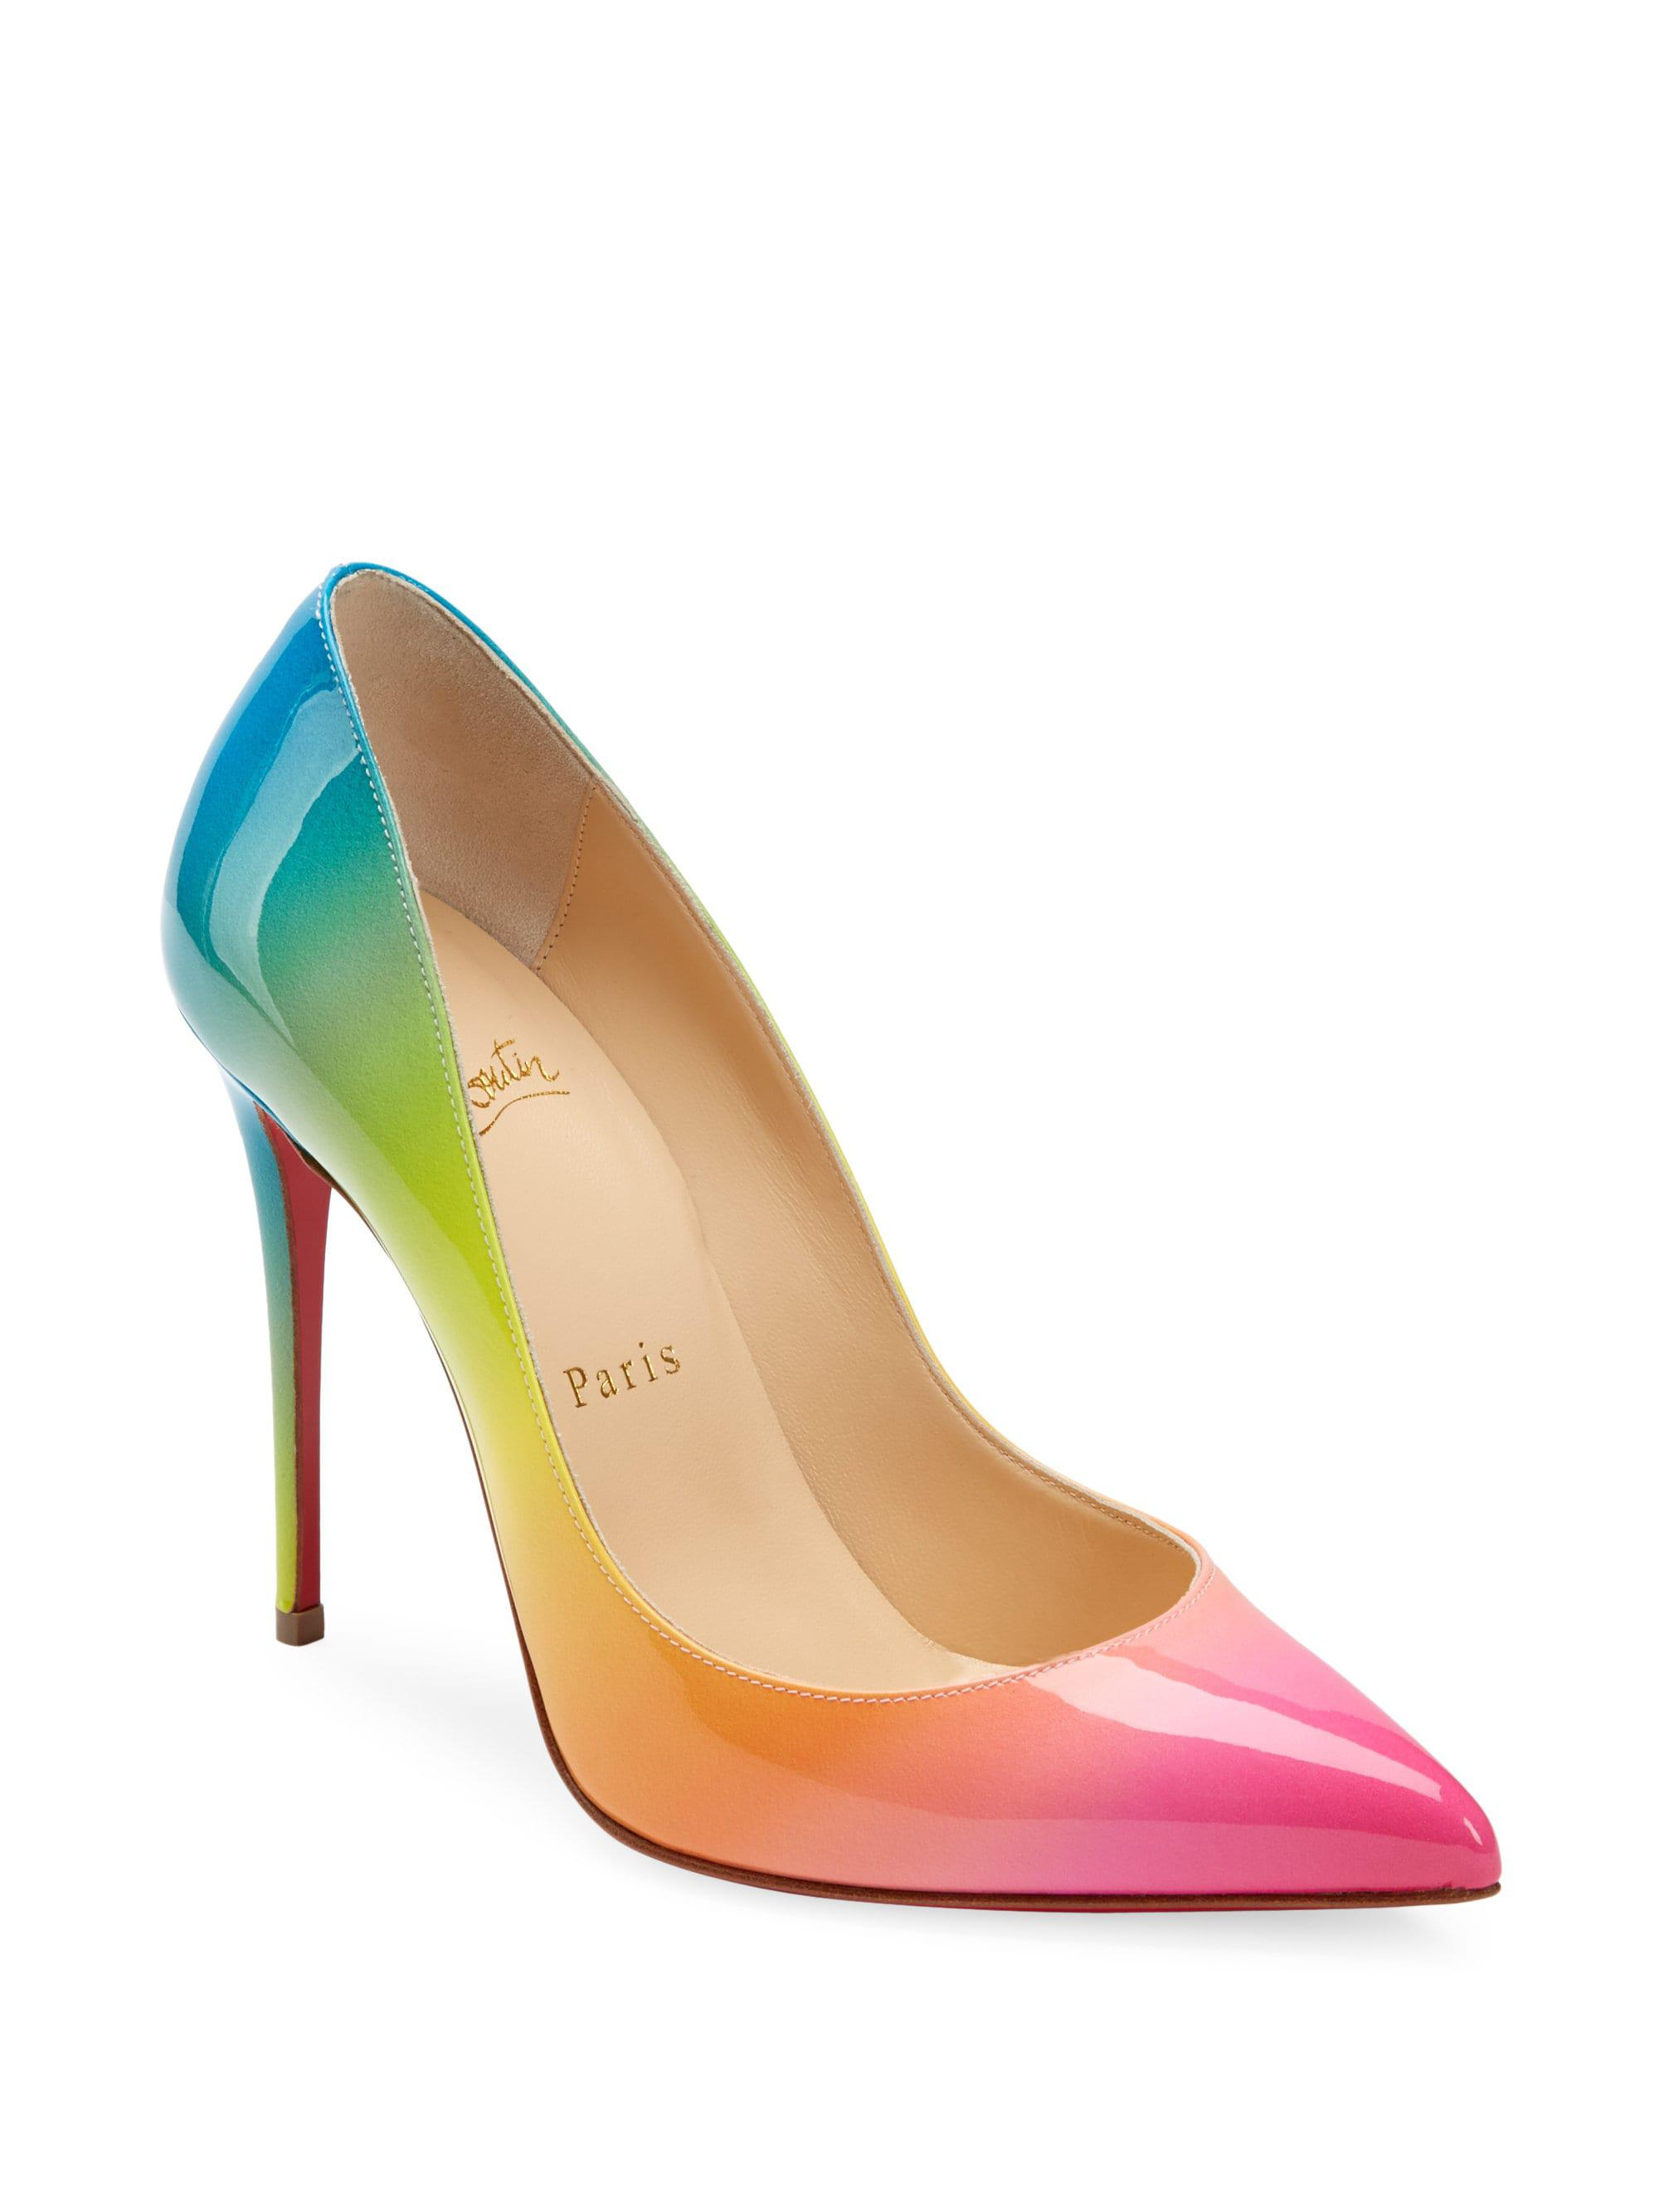 christian louboutin pigalle follies satin red sole pump multicolor